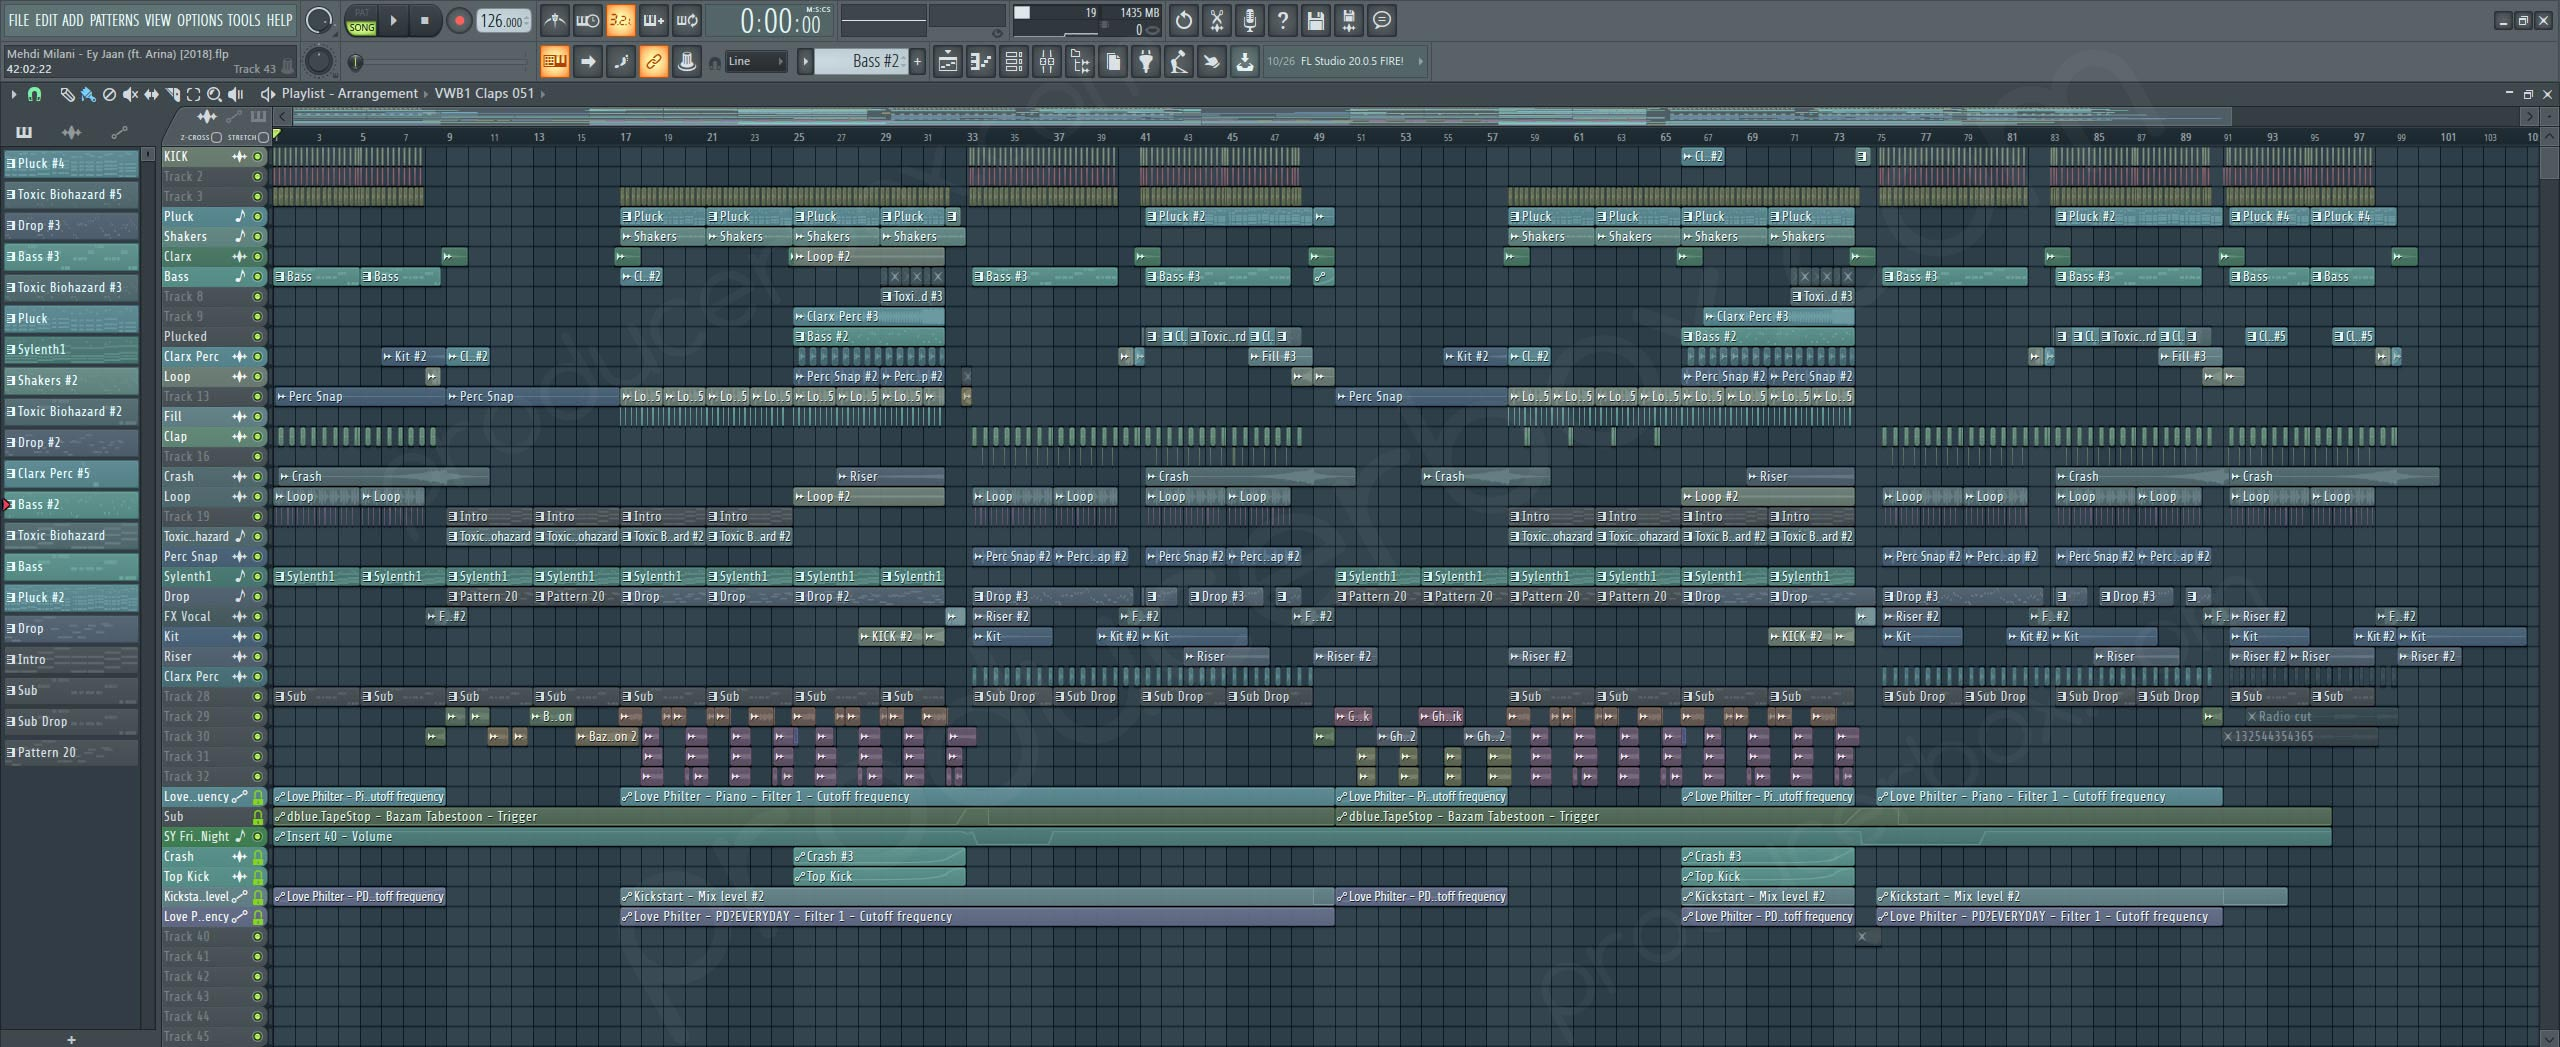 Mehdi Milani - Ey Jaan - Future House 2018 FL Studio Template | ProducerBox